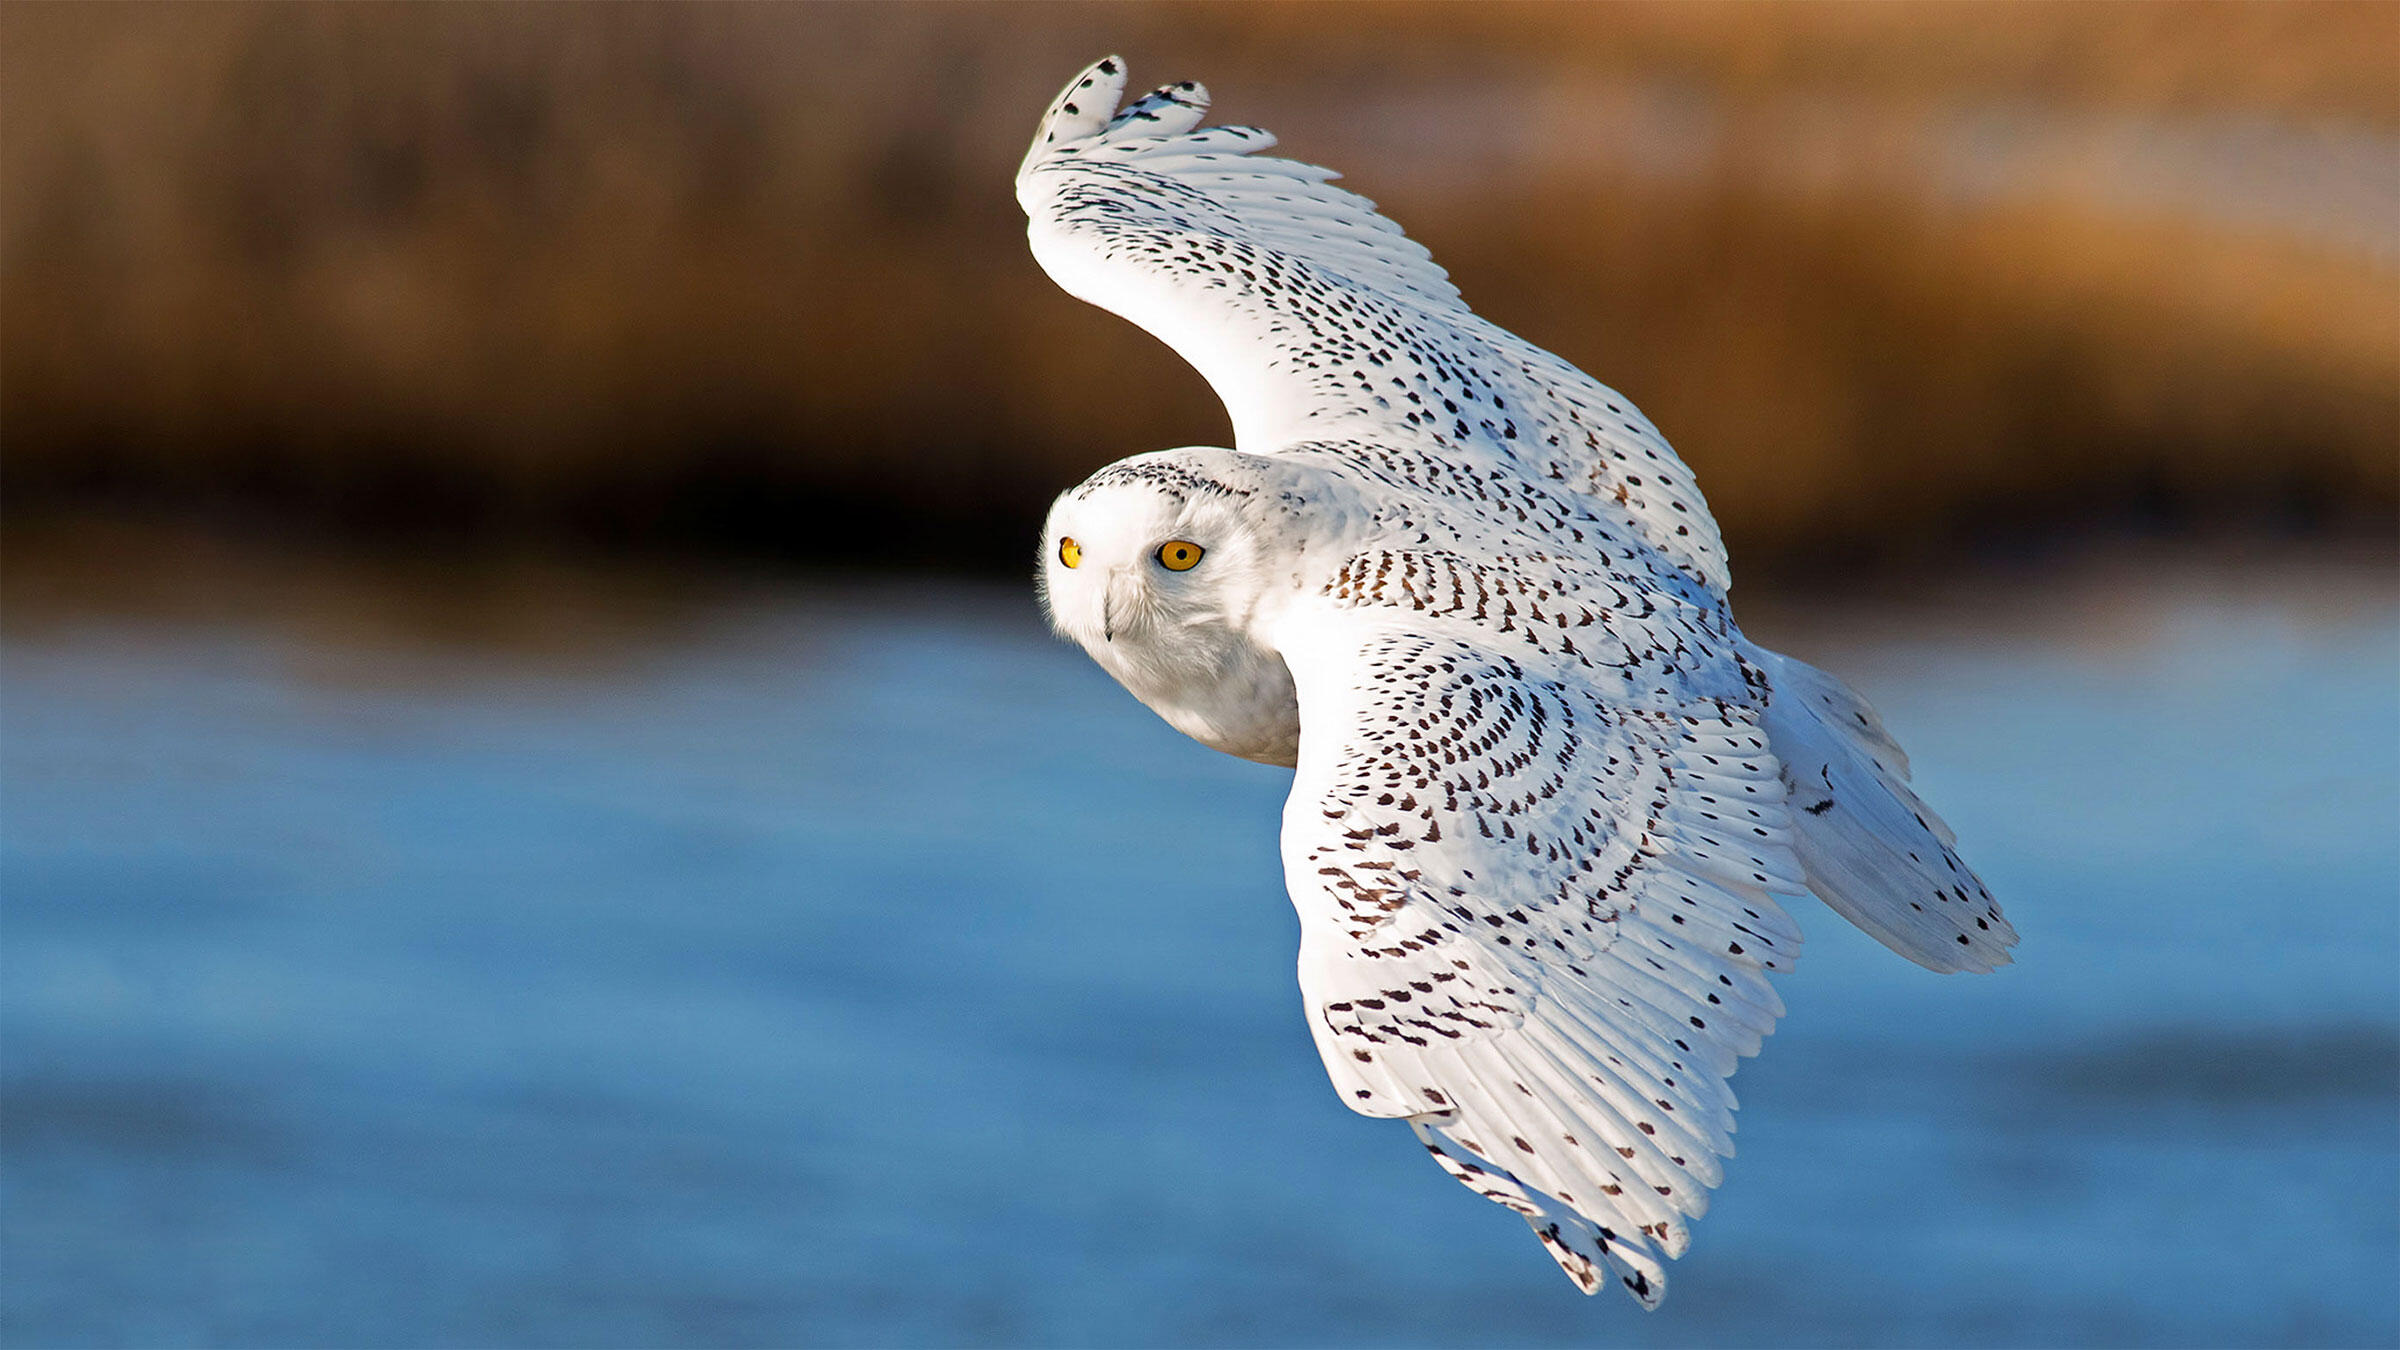 Keep your wits (and eBird) about you: You don't want to miss your chance to see a Snowy Owl in the Lower 48. Brian Kushner